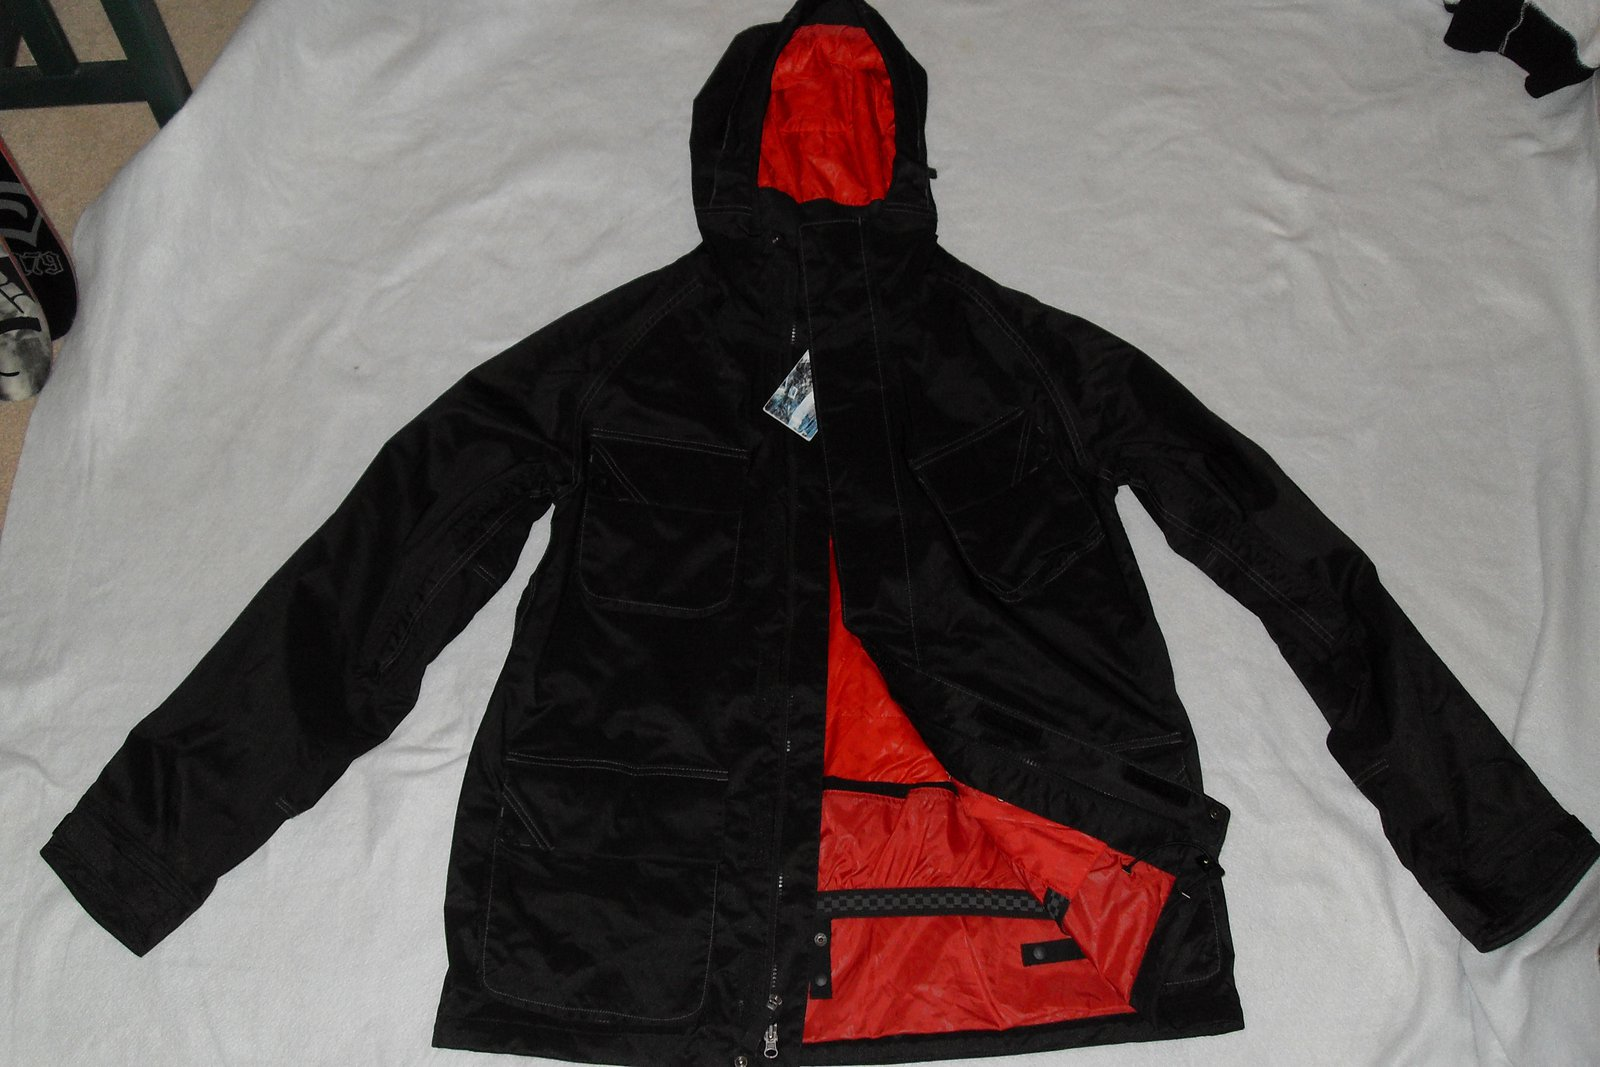 Outerwear - 15 of 16